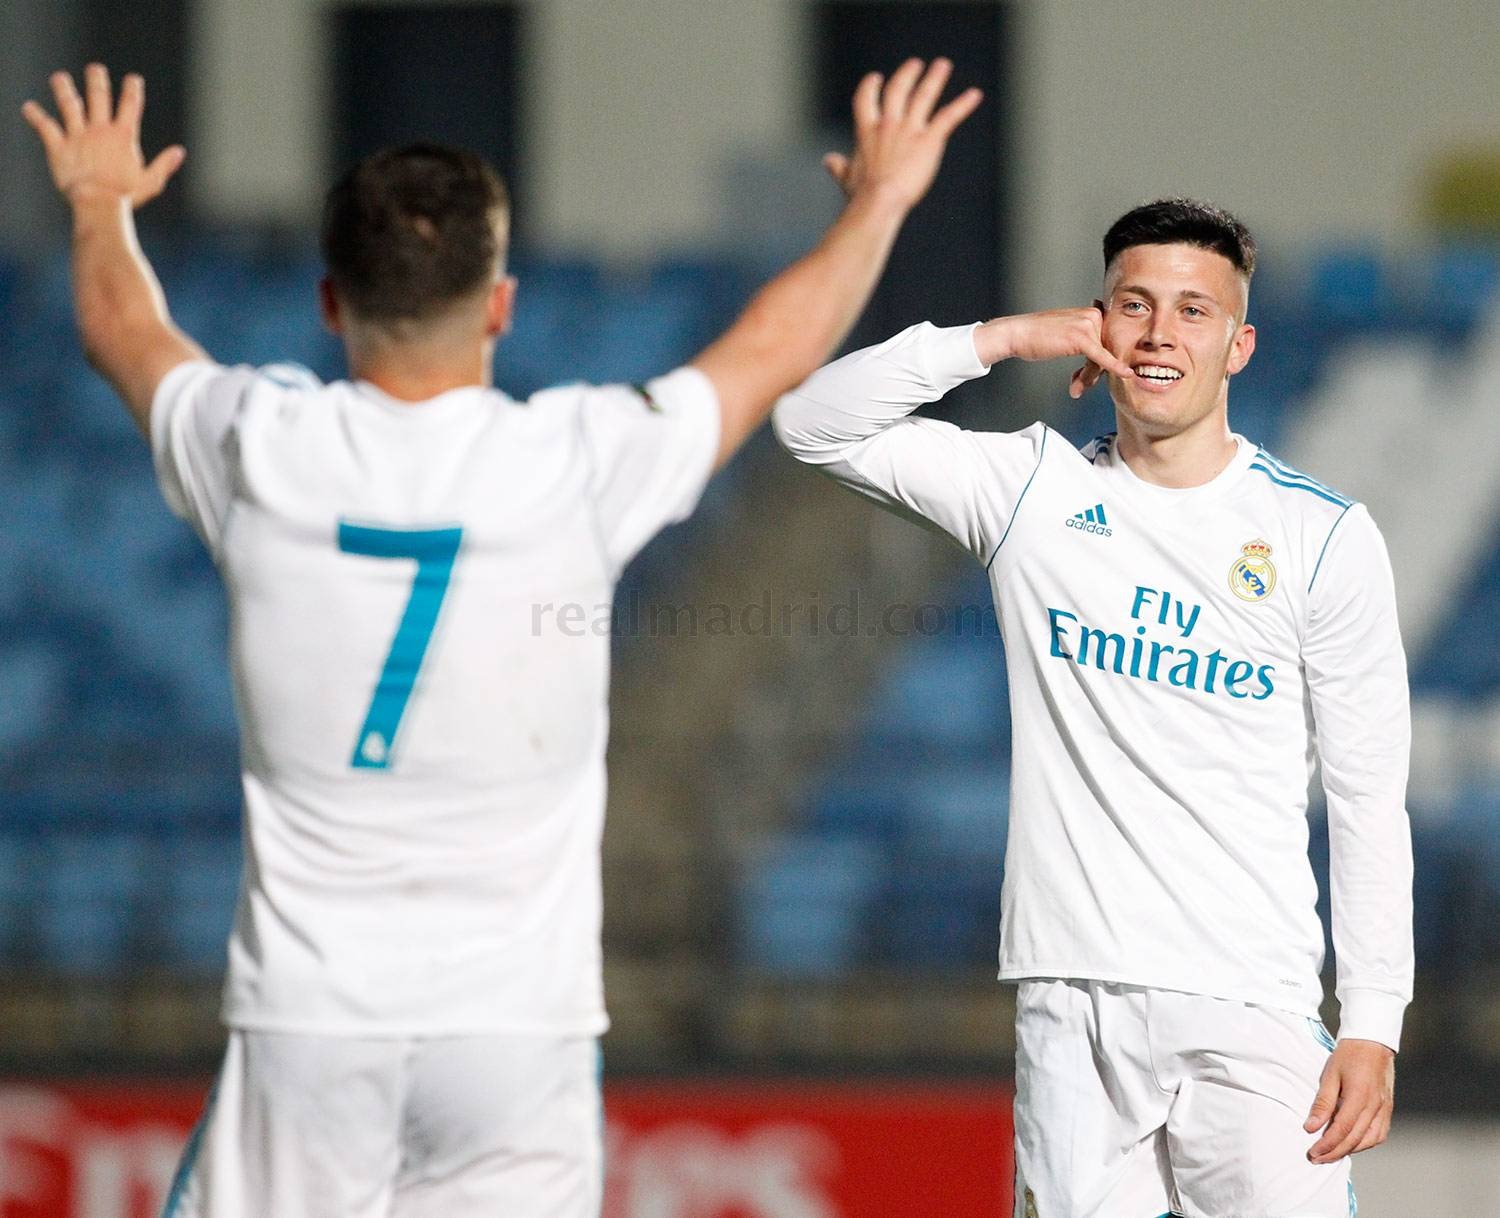 Real Madrid - Real Madrid Castilla - Racing de Ferrol - 06-05-2018